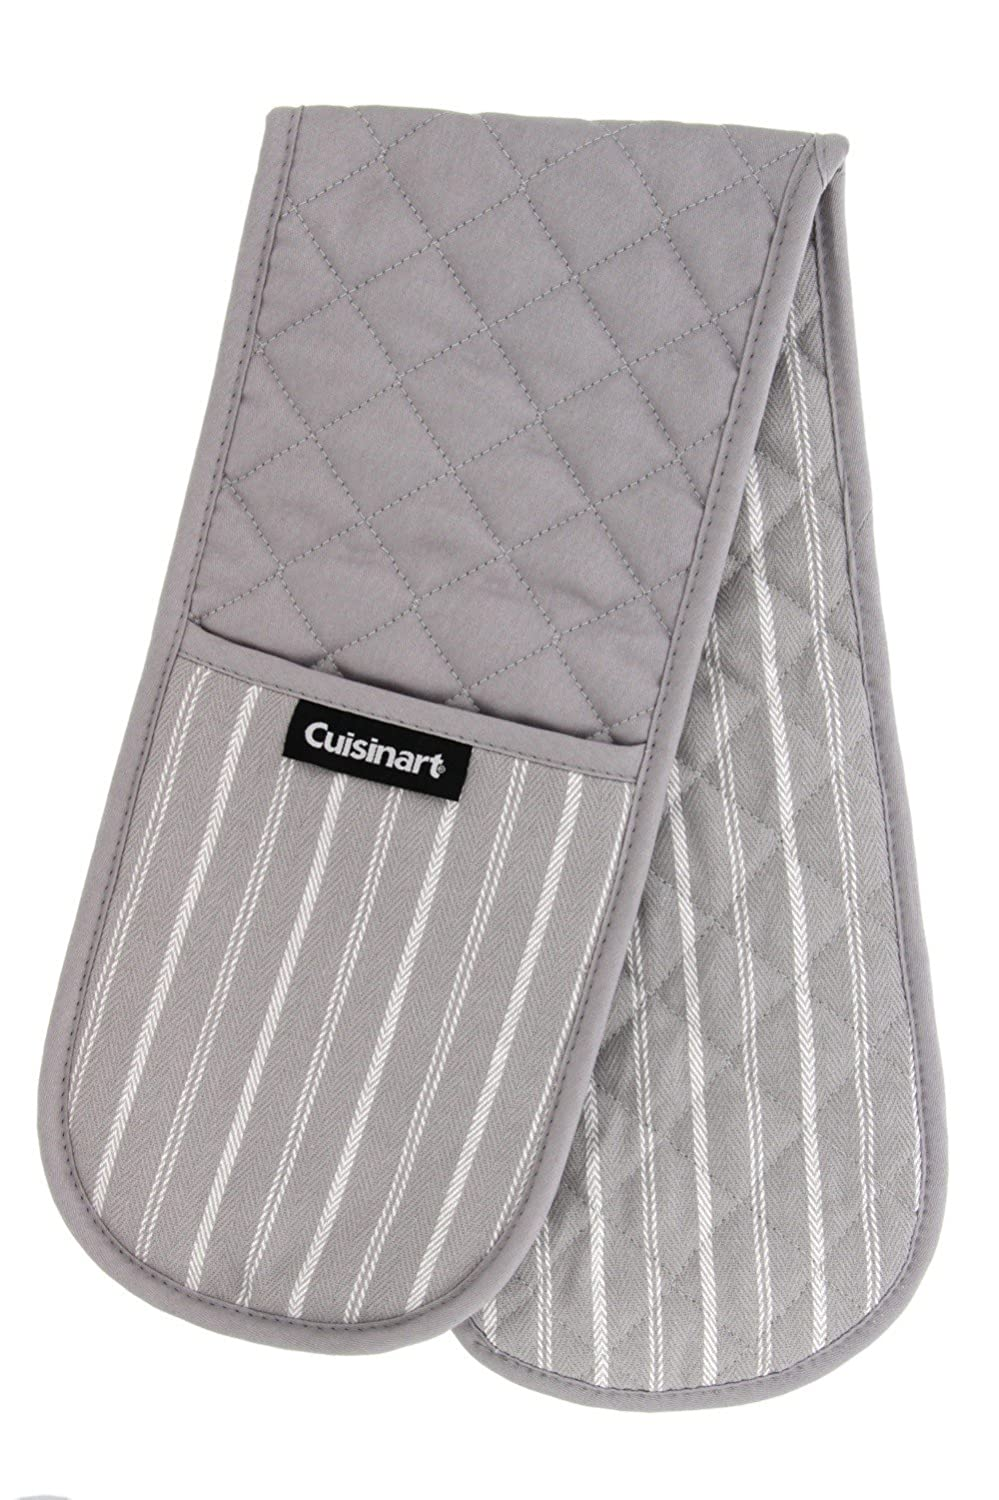 Cuisinart Mini Oven Mitts w/Neoprene for Easy Gripping, Twill Stripe Kitchen Accessory, Heat Resistant up to 500 Degrees F, 5.5 x 7, Set of 2 - Jet Black 5.5 x 7